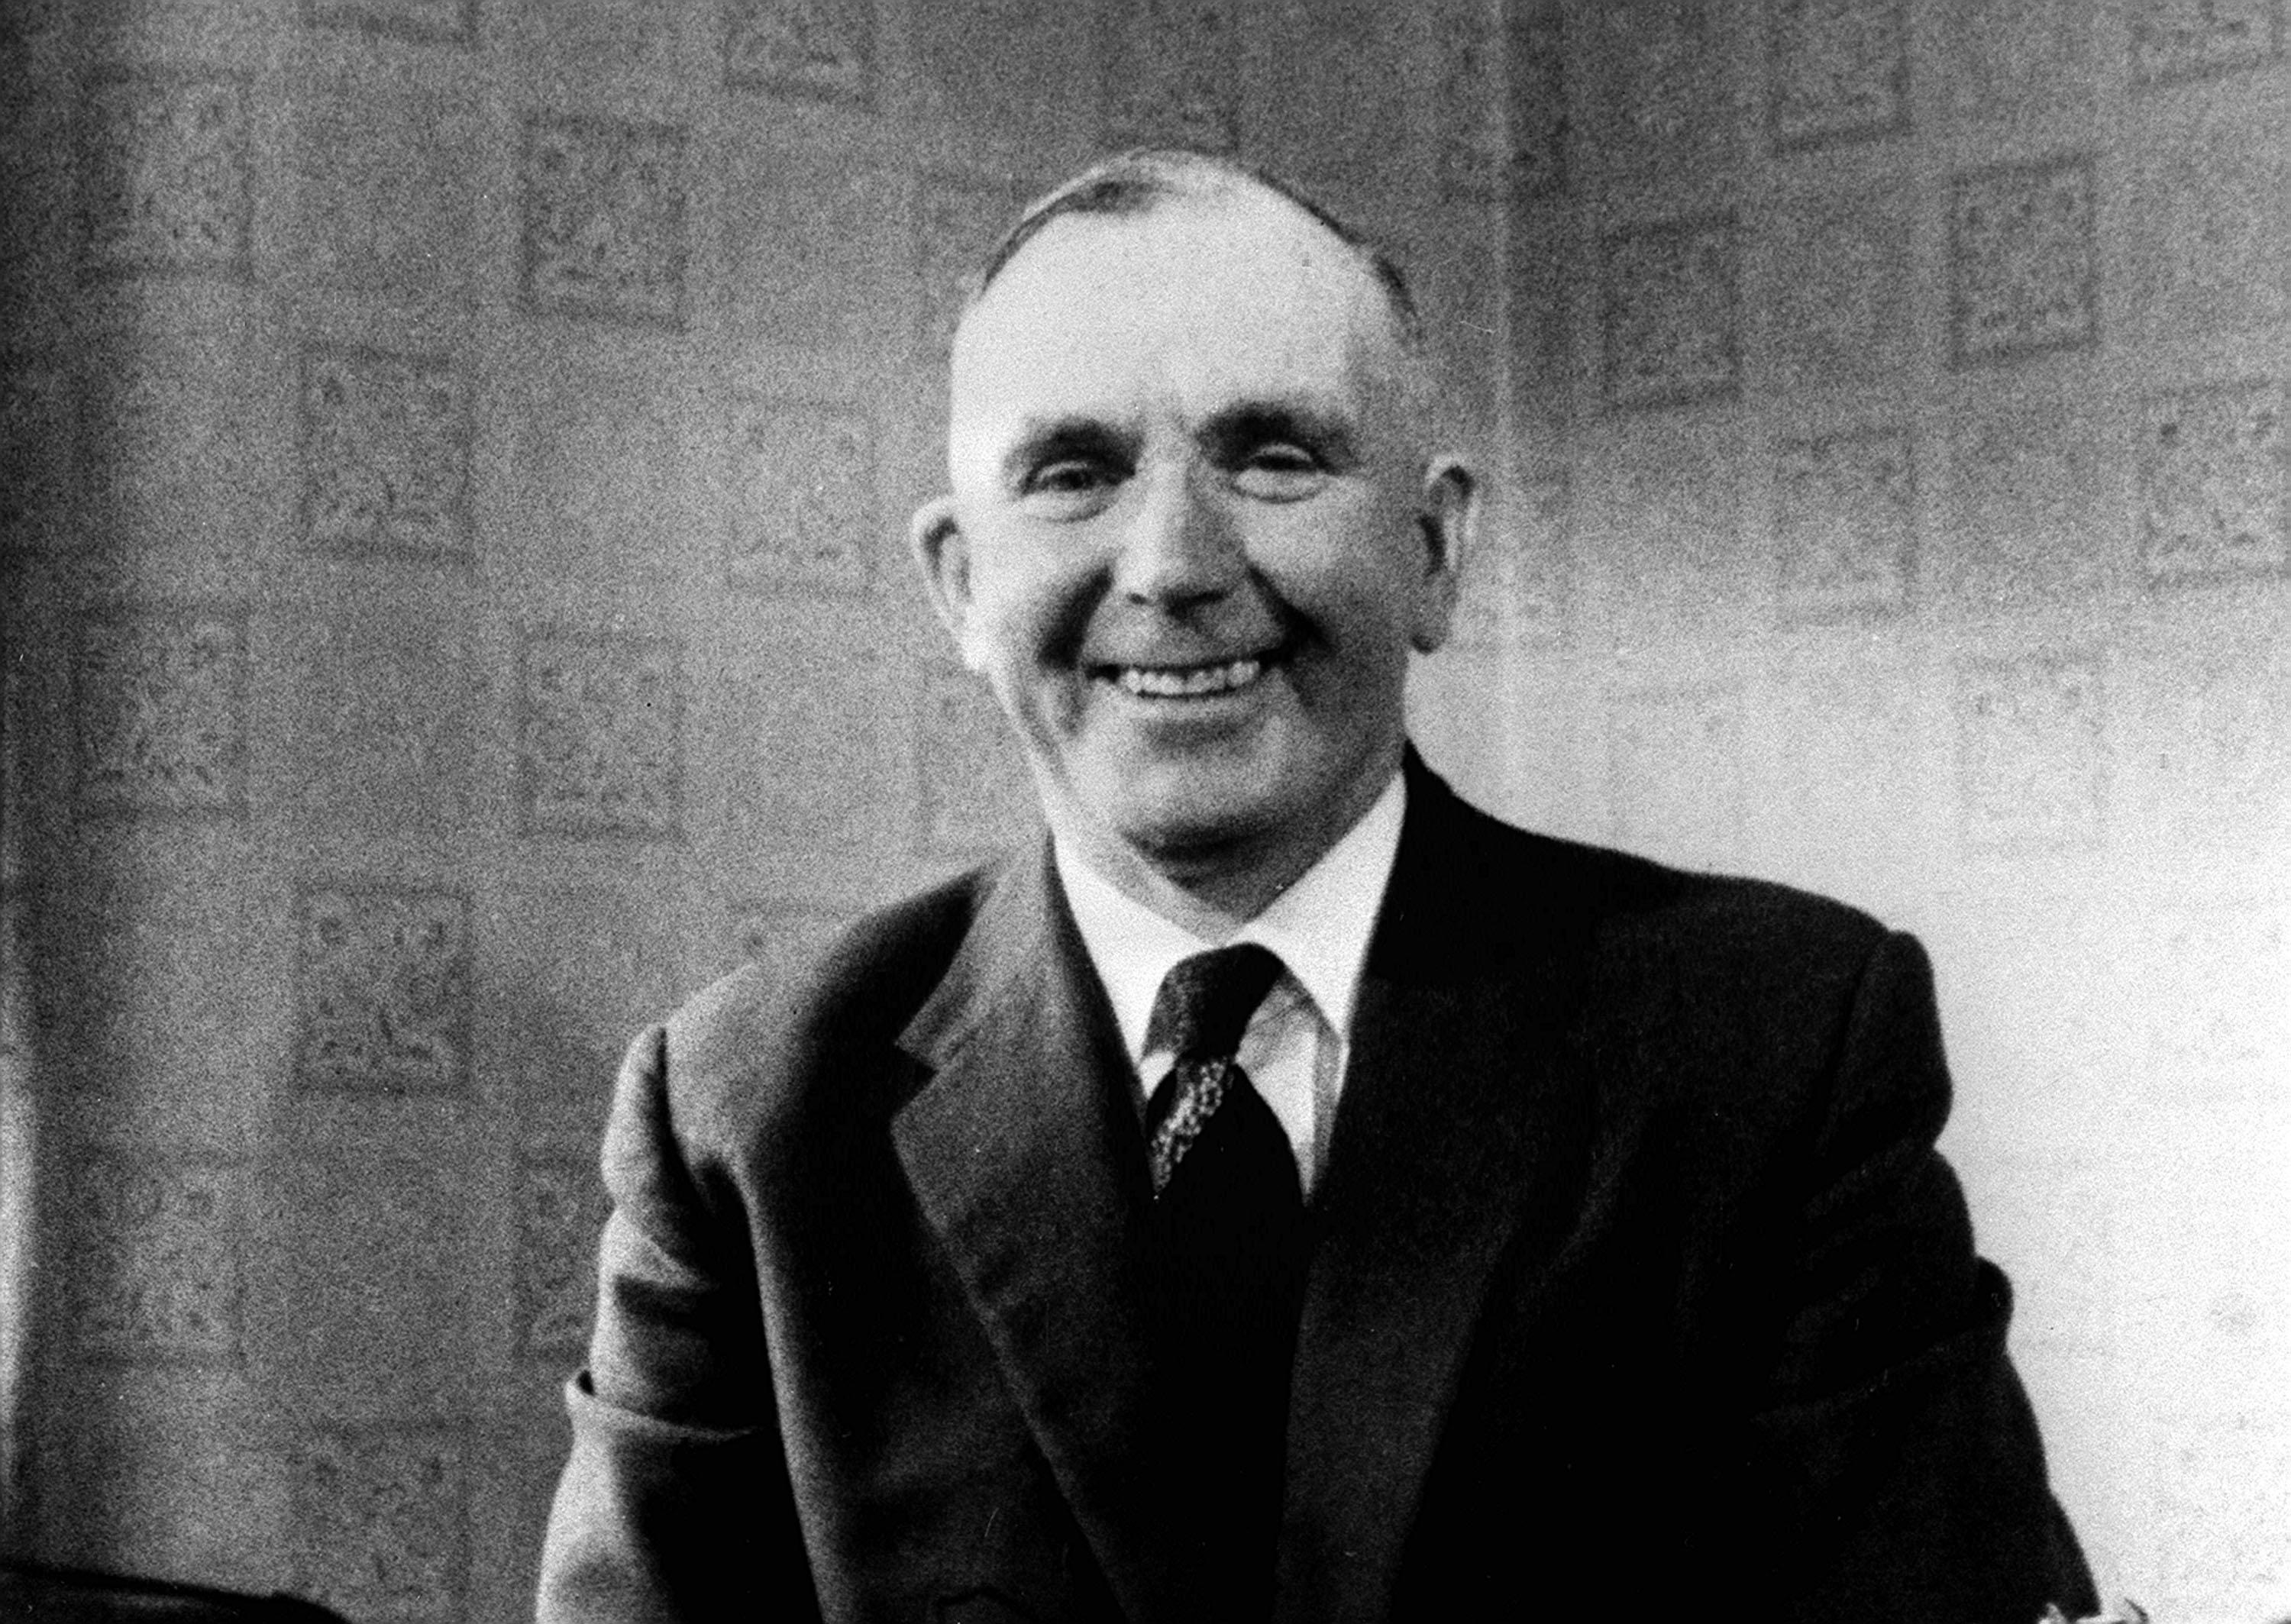 The hangman Albert Pierrepoint